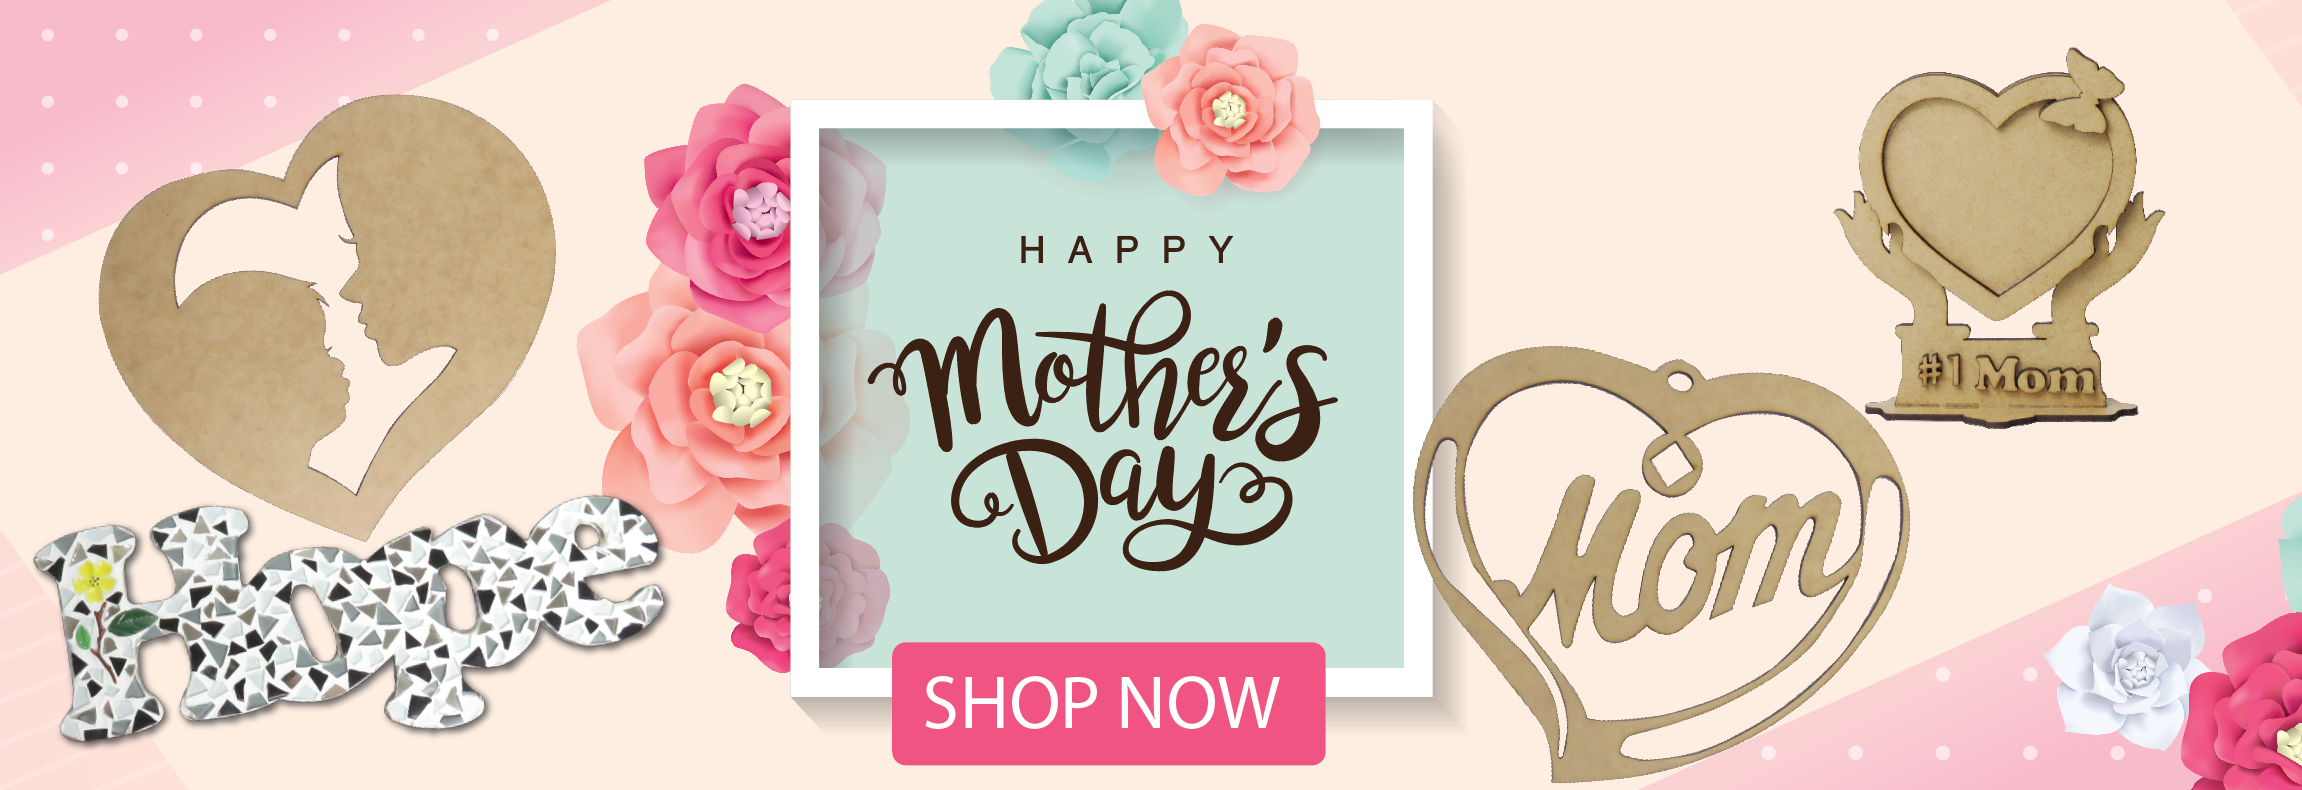 mothers day main banner